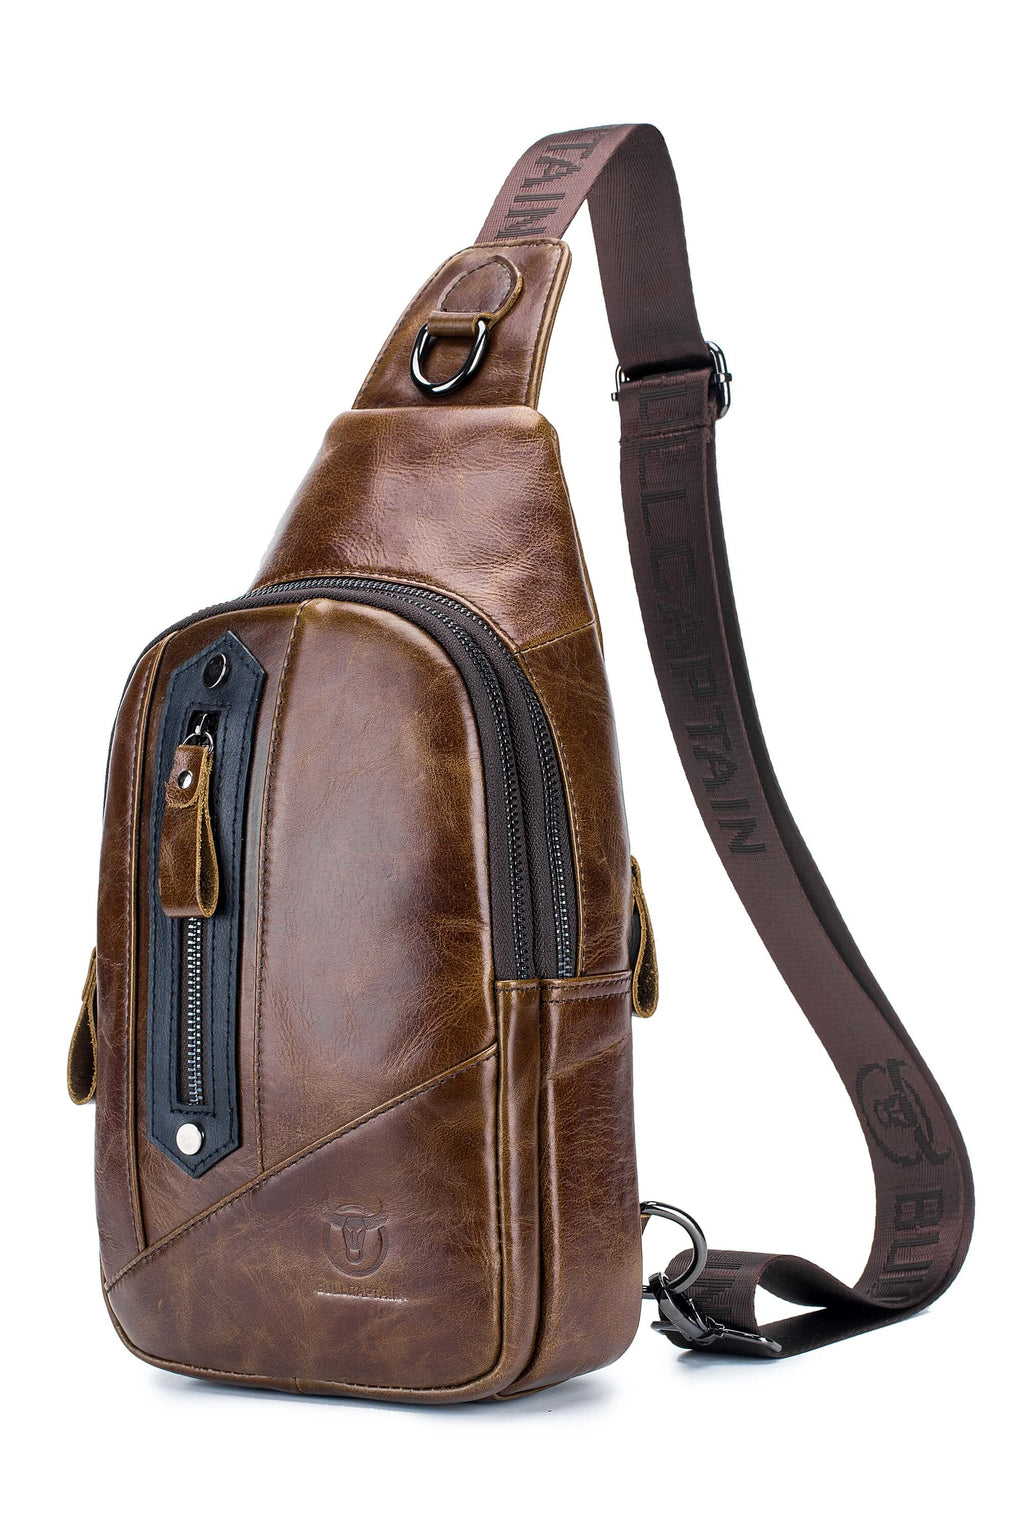 BULLCAPTAIN LEATHER SLING BAG - 126